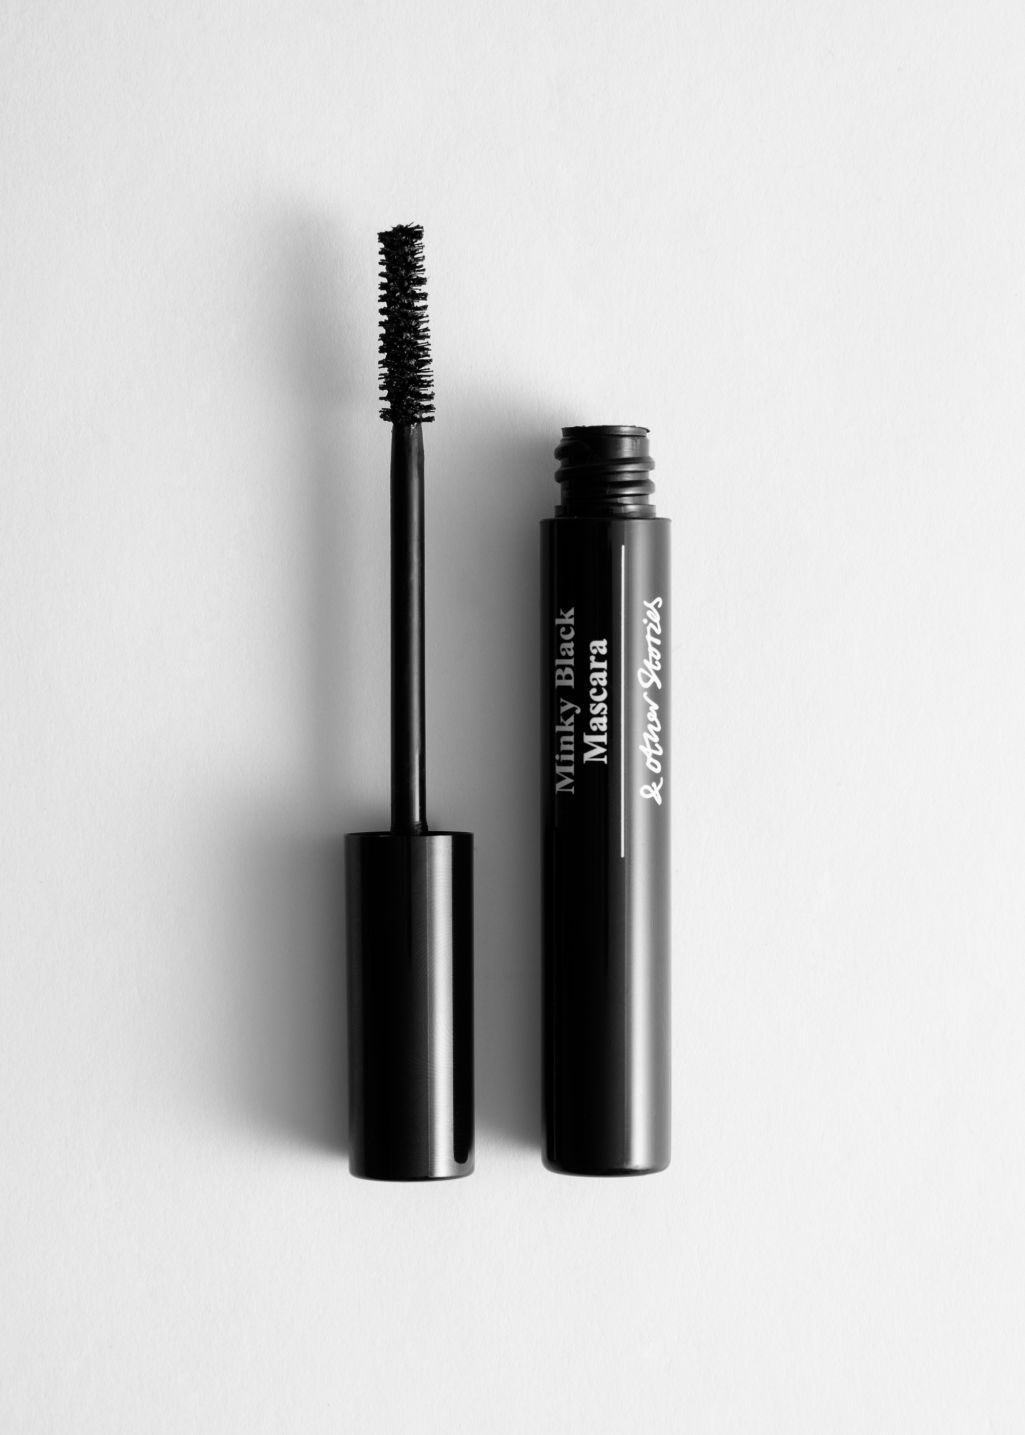 StillLife Front Image of Stories Dramatic Volume Mascara in Black